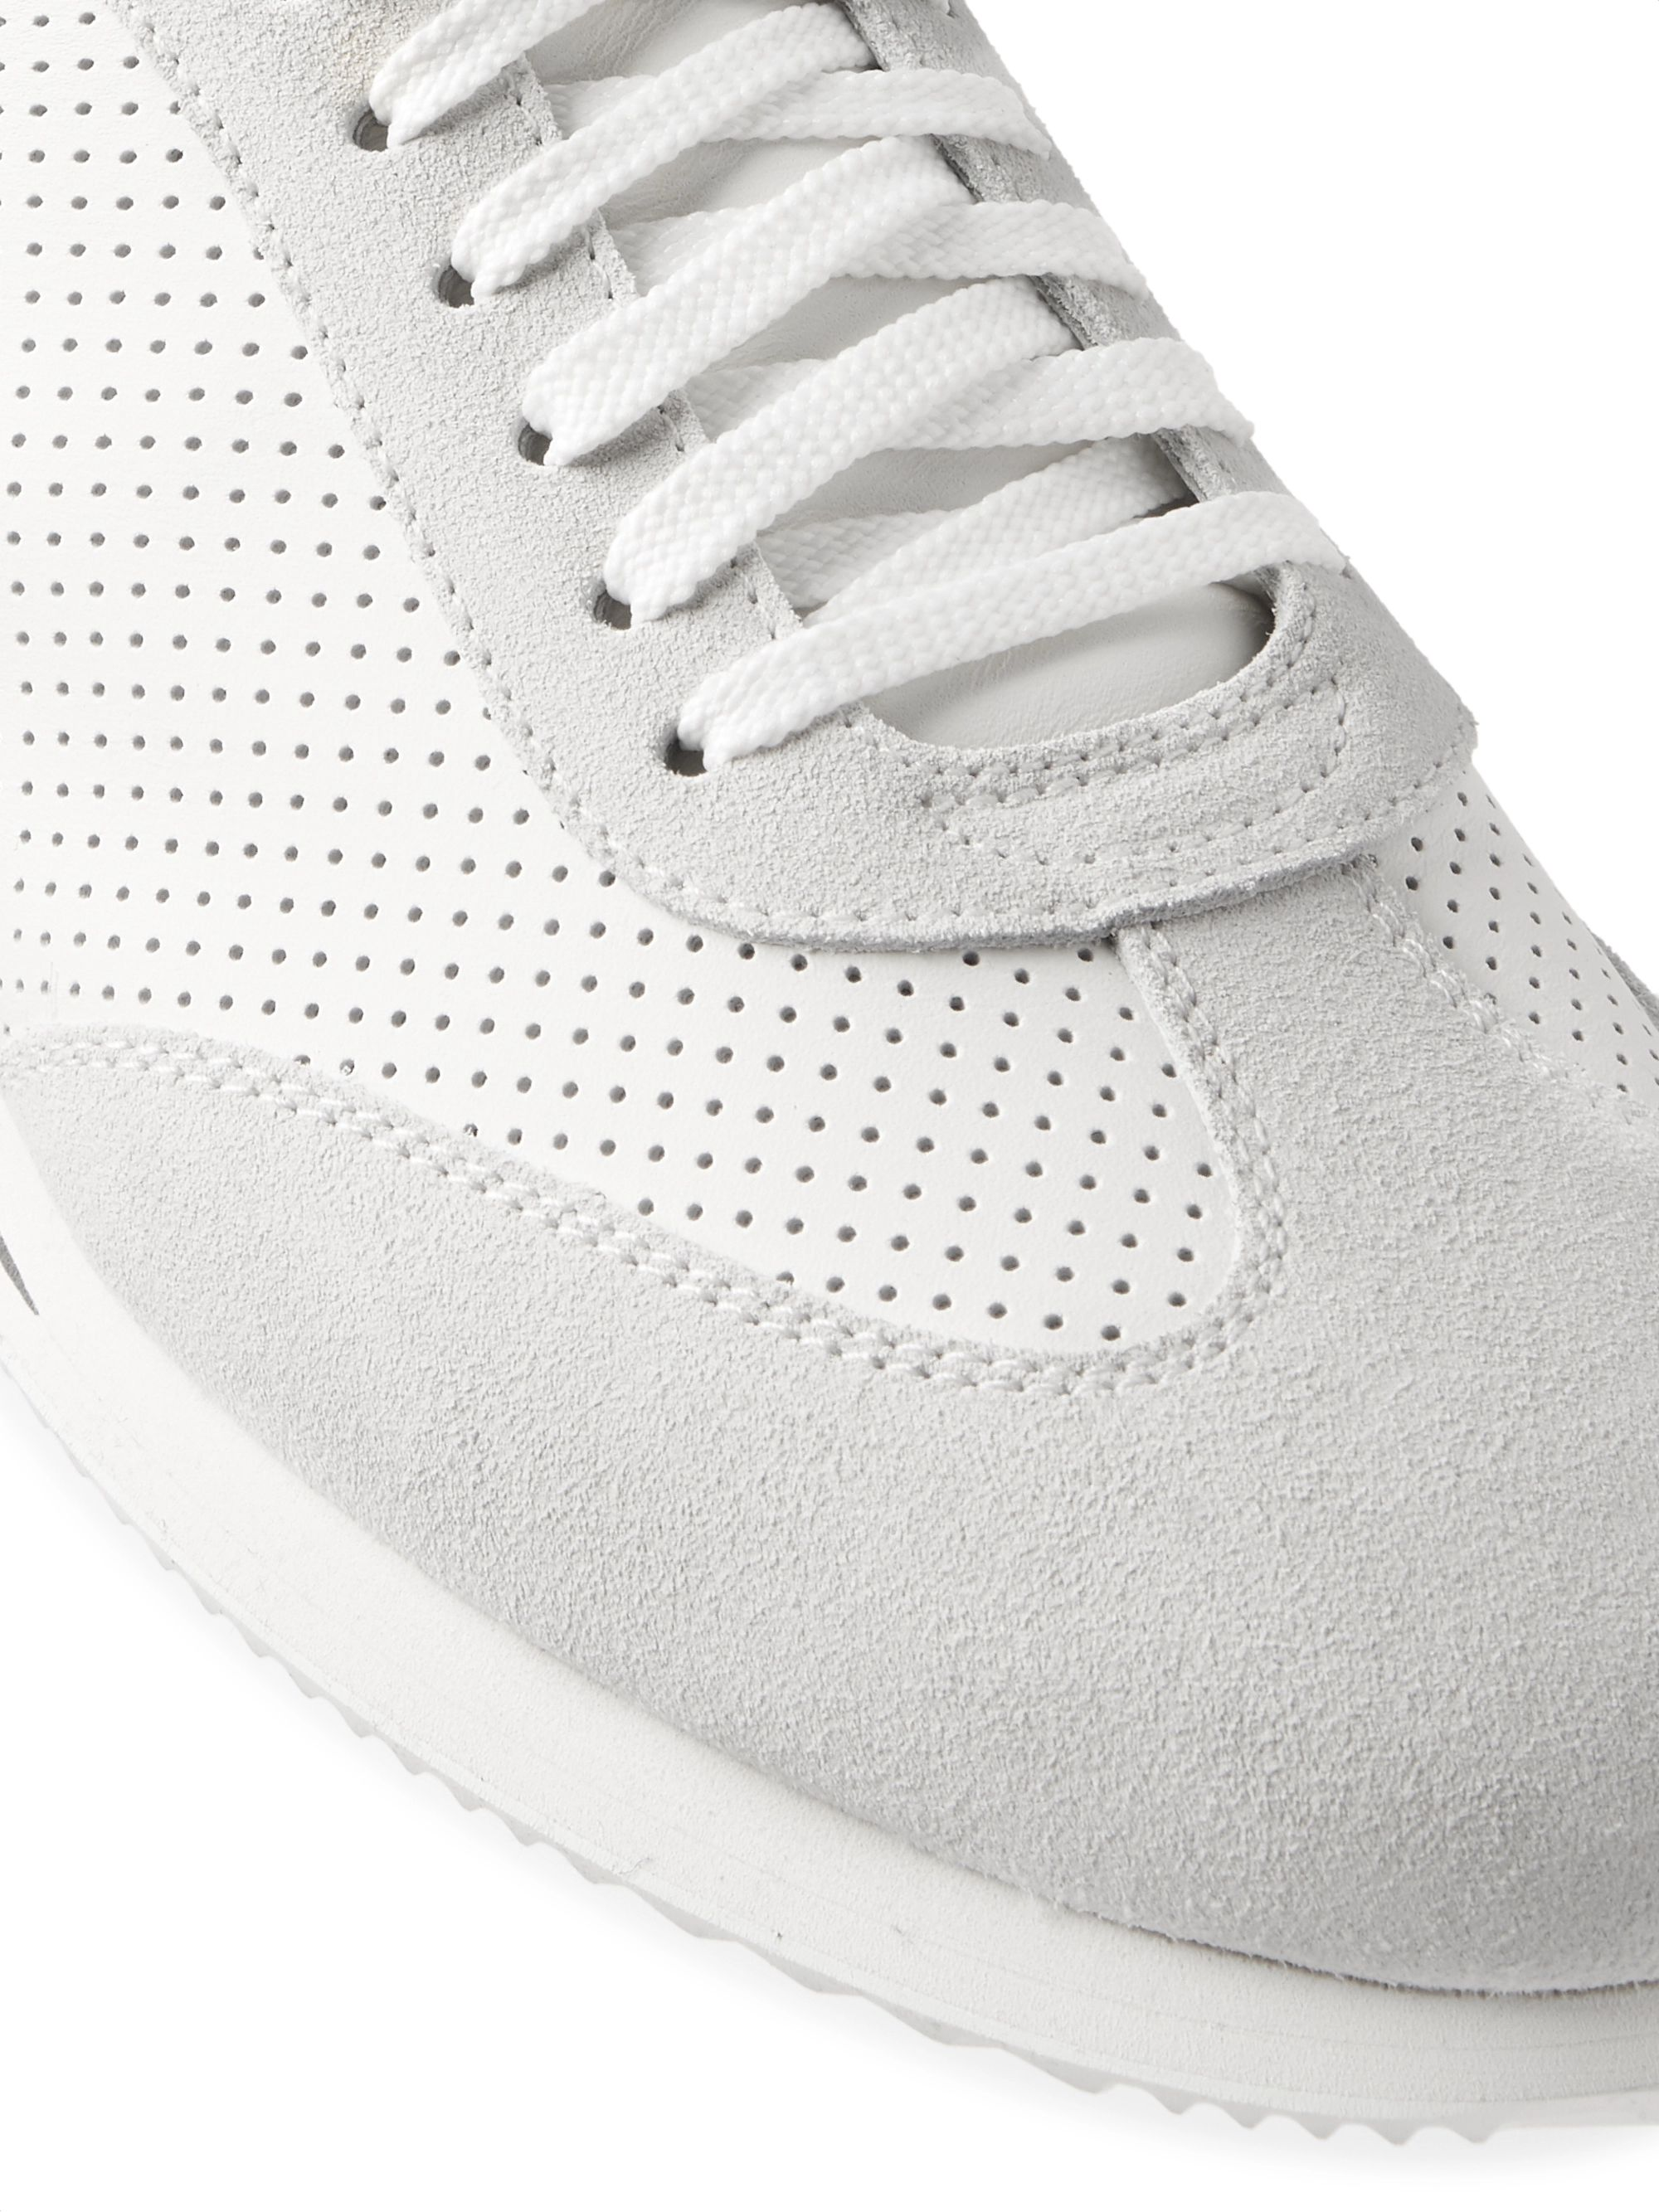 Brunello Cucinelli Suede-Trimmed Leather and Mesh Sneakers